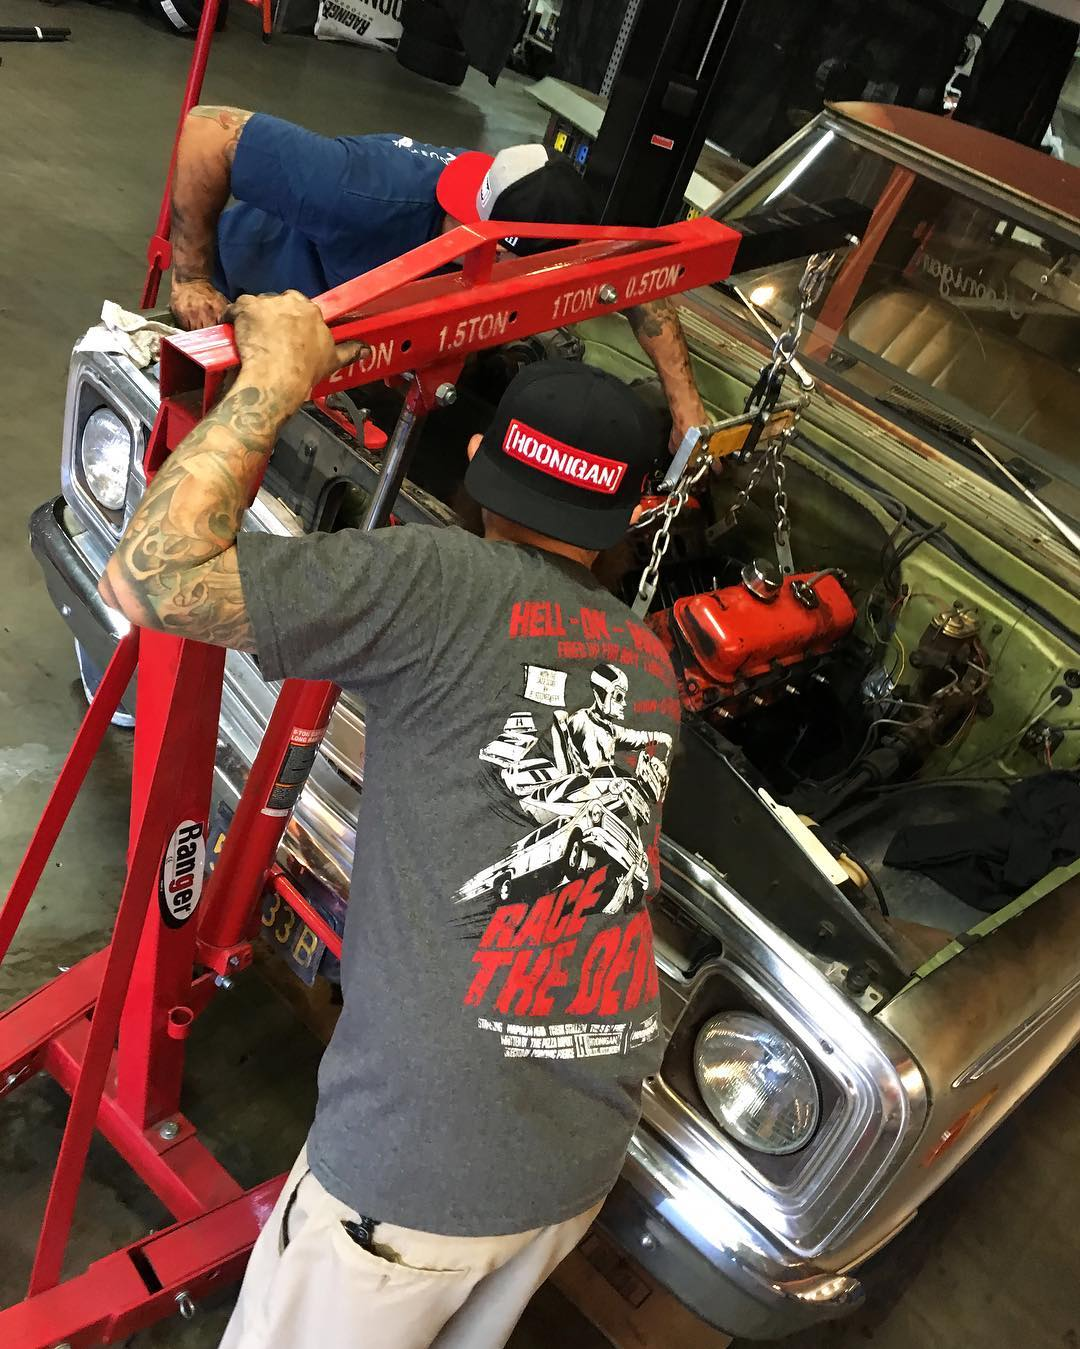 Hell On Wheels You know that moment the engine separates from the transmission. Hell on Wheels tee and Letterman snapback - #hooniganDOTcom #YankThatBoatAnchor #supporthooniganism